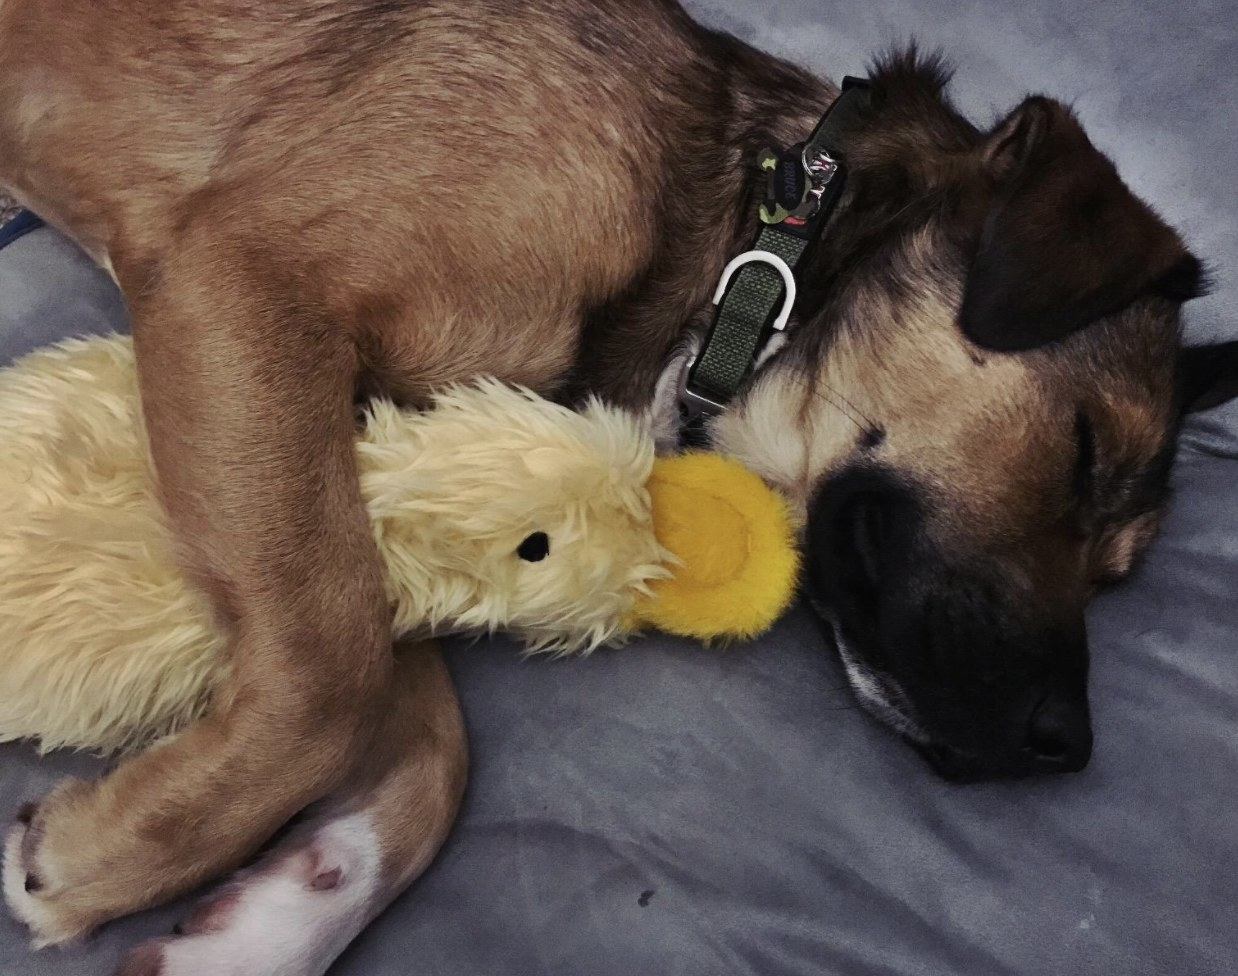 A dog sleeping with a toy duck